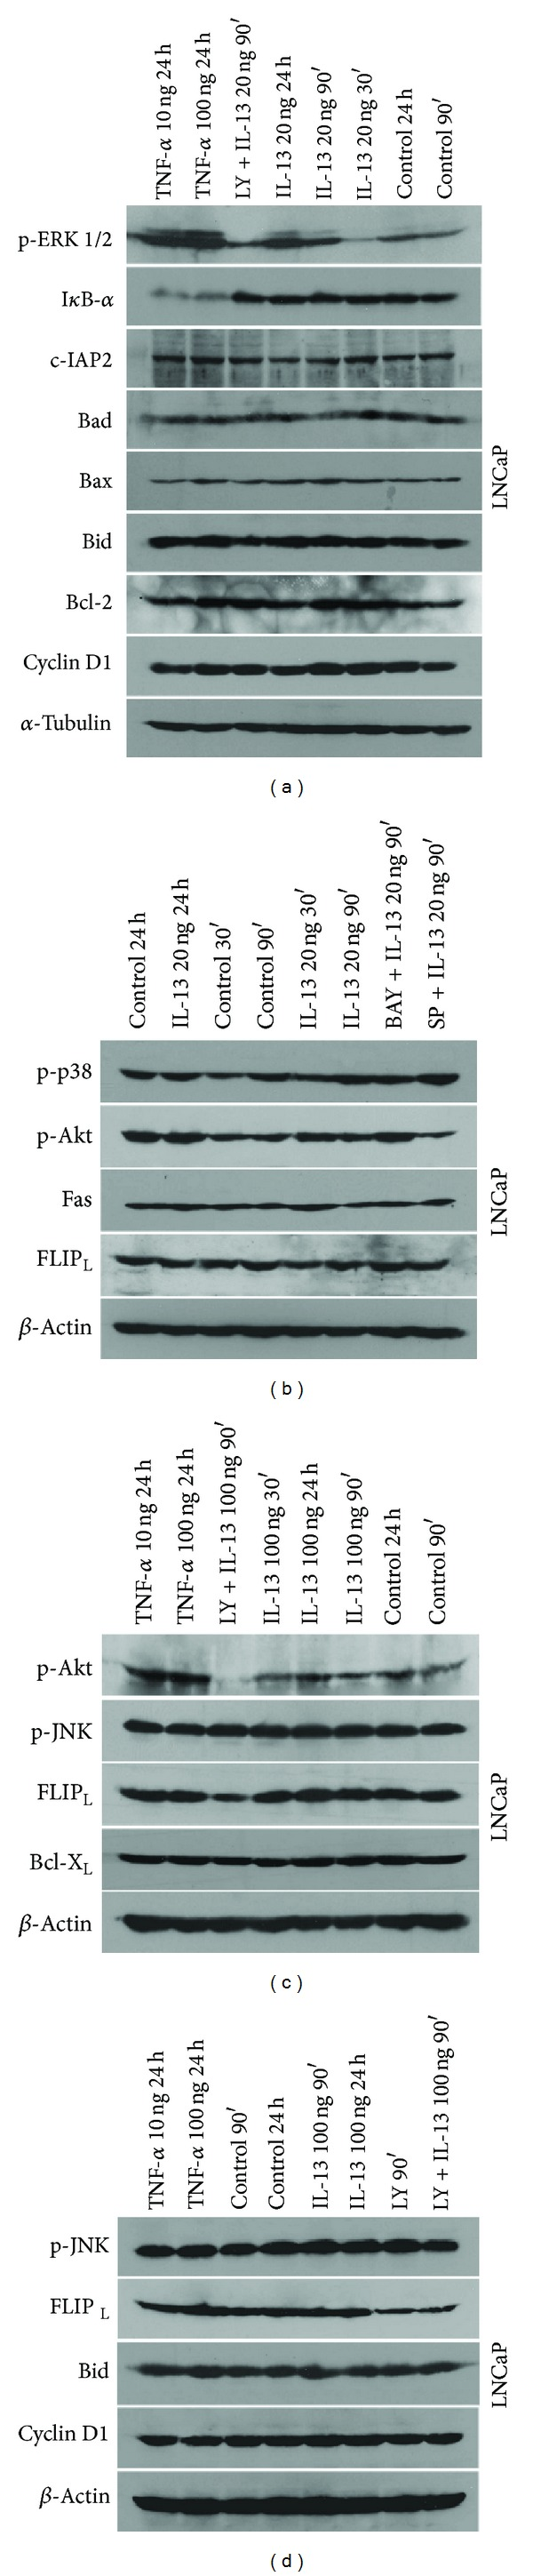 Western blot analysis of LNCaP protein expression. (a), (b), (c), and (d) LNCaP cells were treated with TNF- α (10 and 100 ng/mL) for 24 h or IL-13 (20 and 100 ng/mL) for 30 and 90 min and 24 h or LY-29004 (20 μ M) for 90 min or pretreated with LY-29004 (20 μ M), BAY-117082 (30 μ M), or SP600125 (30 μ M) for 1 h and then treated with IL-13 (20 and 100 ng/mL) for 90 min. Untreated cells for 30 and 90 min and 24 h were used as control (ctrl). Cell extracts were resolved by SDS-PAGE and analyzed by western blot with antibodies against Bid, Bad, Bax, Bcl-2, Cyclin D1, p-ERK 1/2, I κ B- α , c-IAP2, p-p38, p-Akt, Fas, FLIP L , p-JNK, and Bcl-X L . Reprobing with antibody against α -tubulin or β -actin was used as a loading and transfer marker.